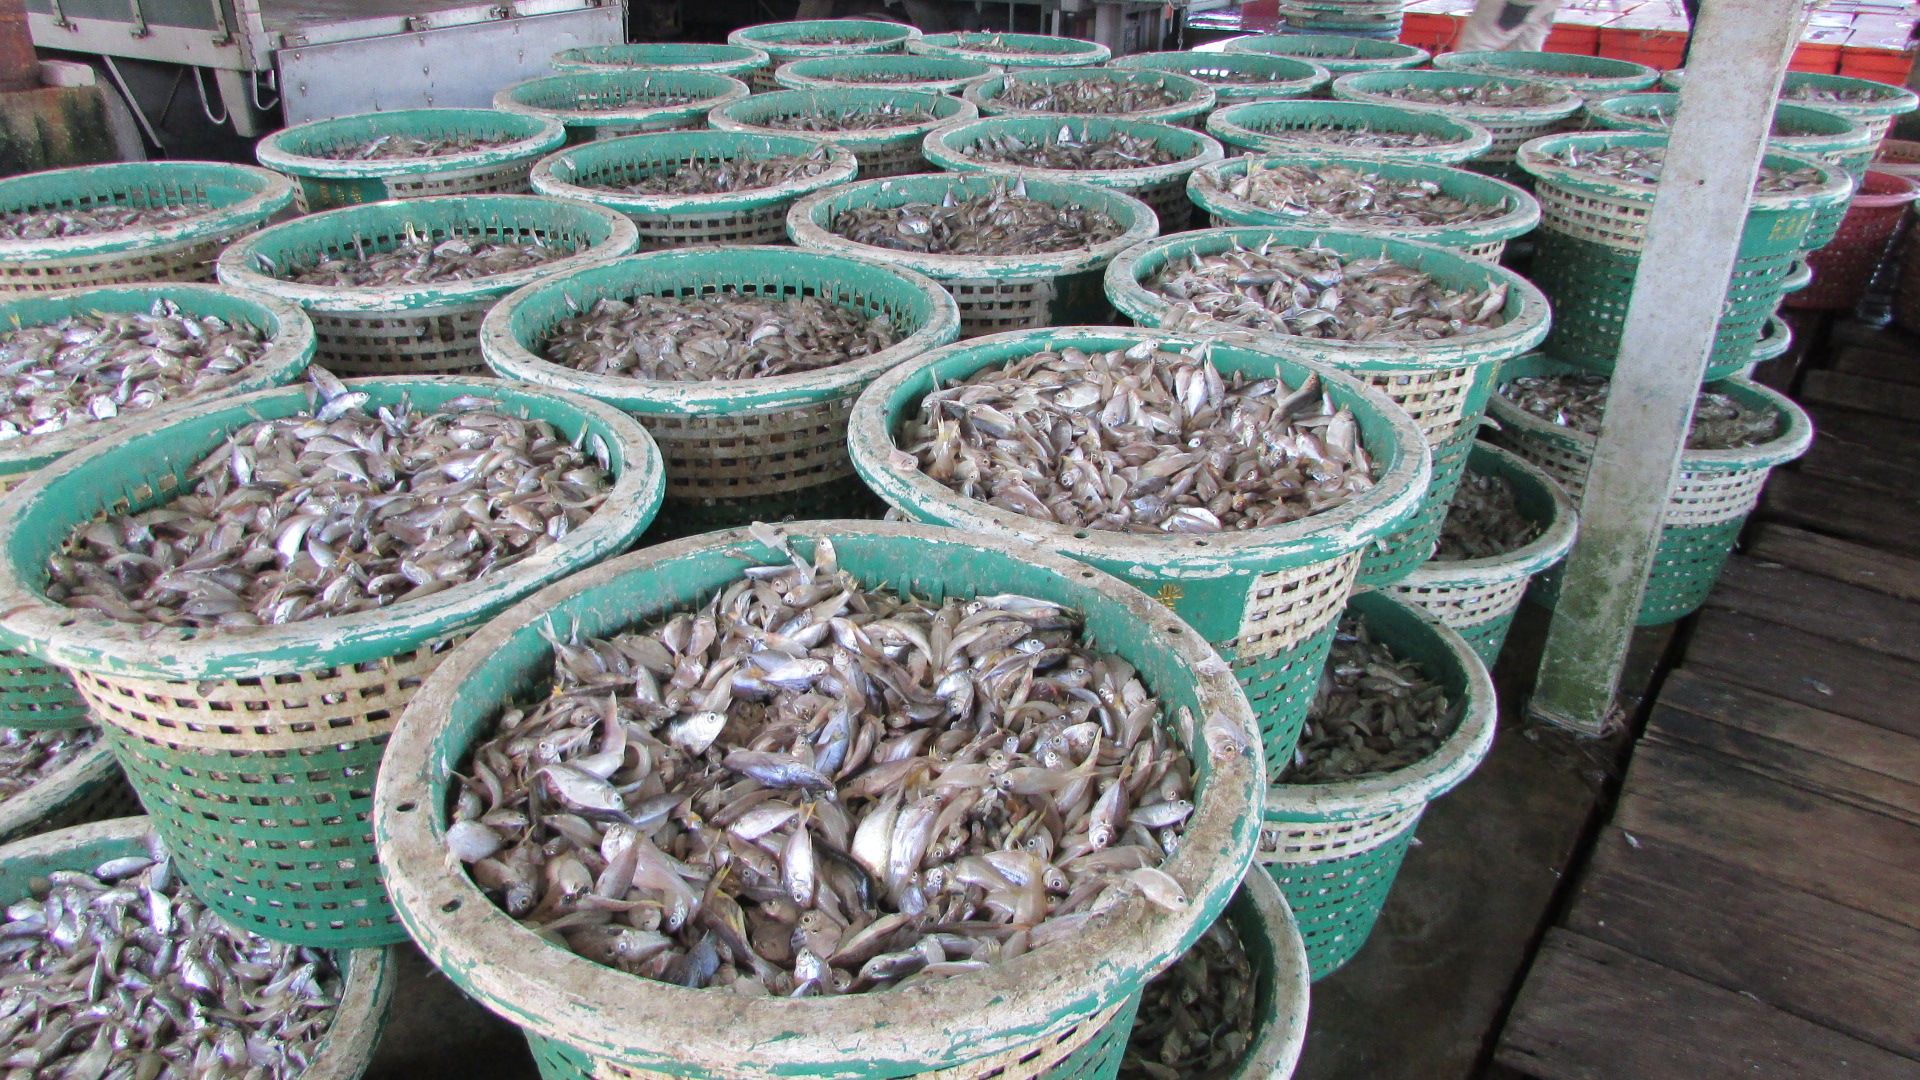 Juvenile fish and fries destroyed by trawlers | SAM